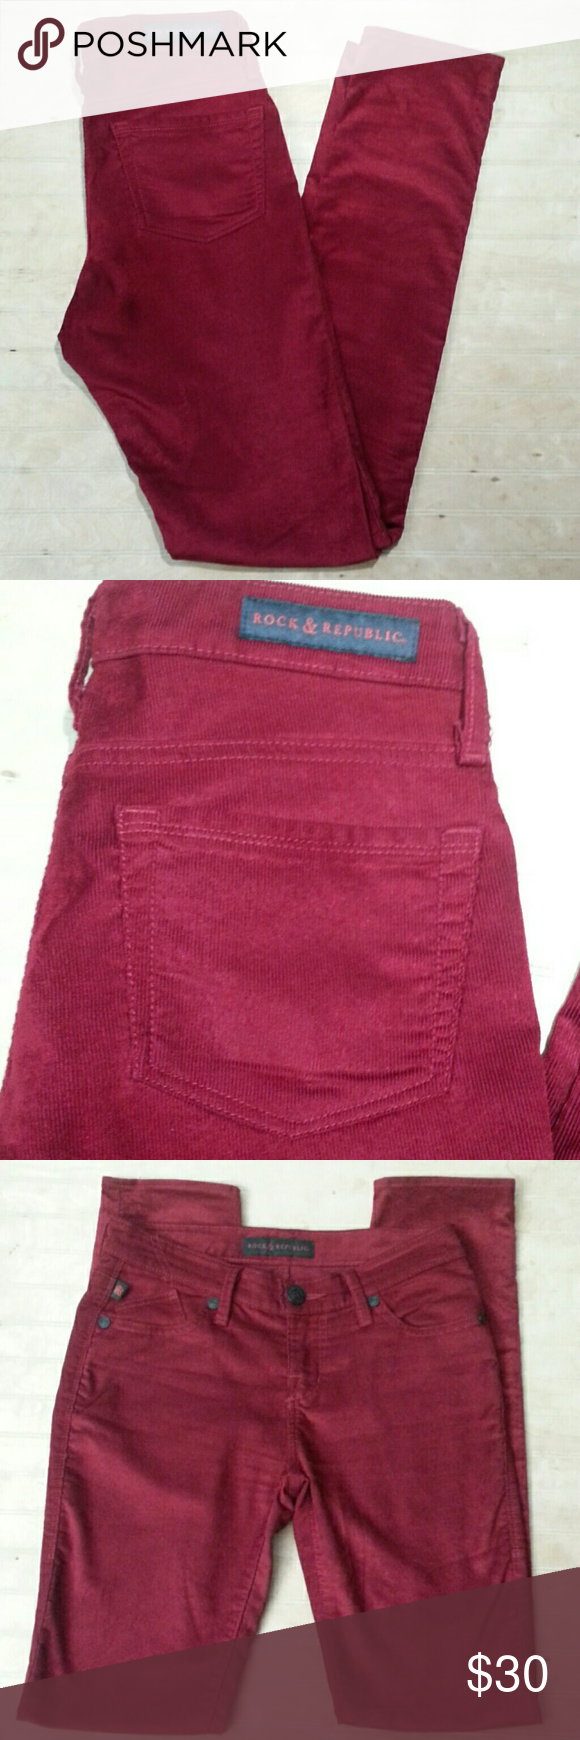 "Rock & Republic Berlin Cords These are a rich red with an eye catching sheen and softness. They are a darker, prettier red in person than in the photos.  The Berlin has a slim fit with a longer inseam and midrise  14.5""waist 8""rise 31.5""inseam 5.5""leg Rock & Republic Pants Skinny"